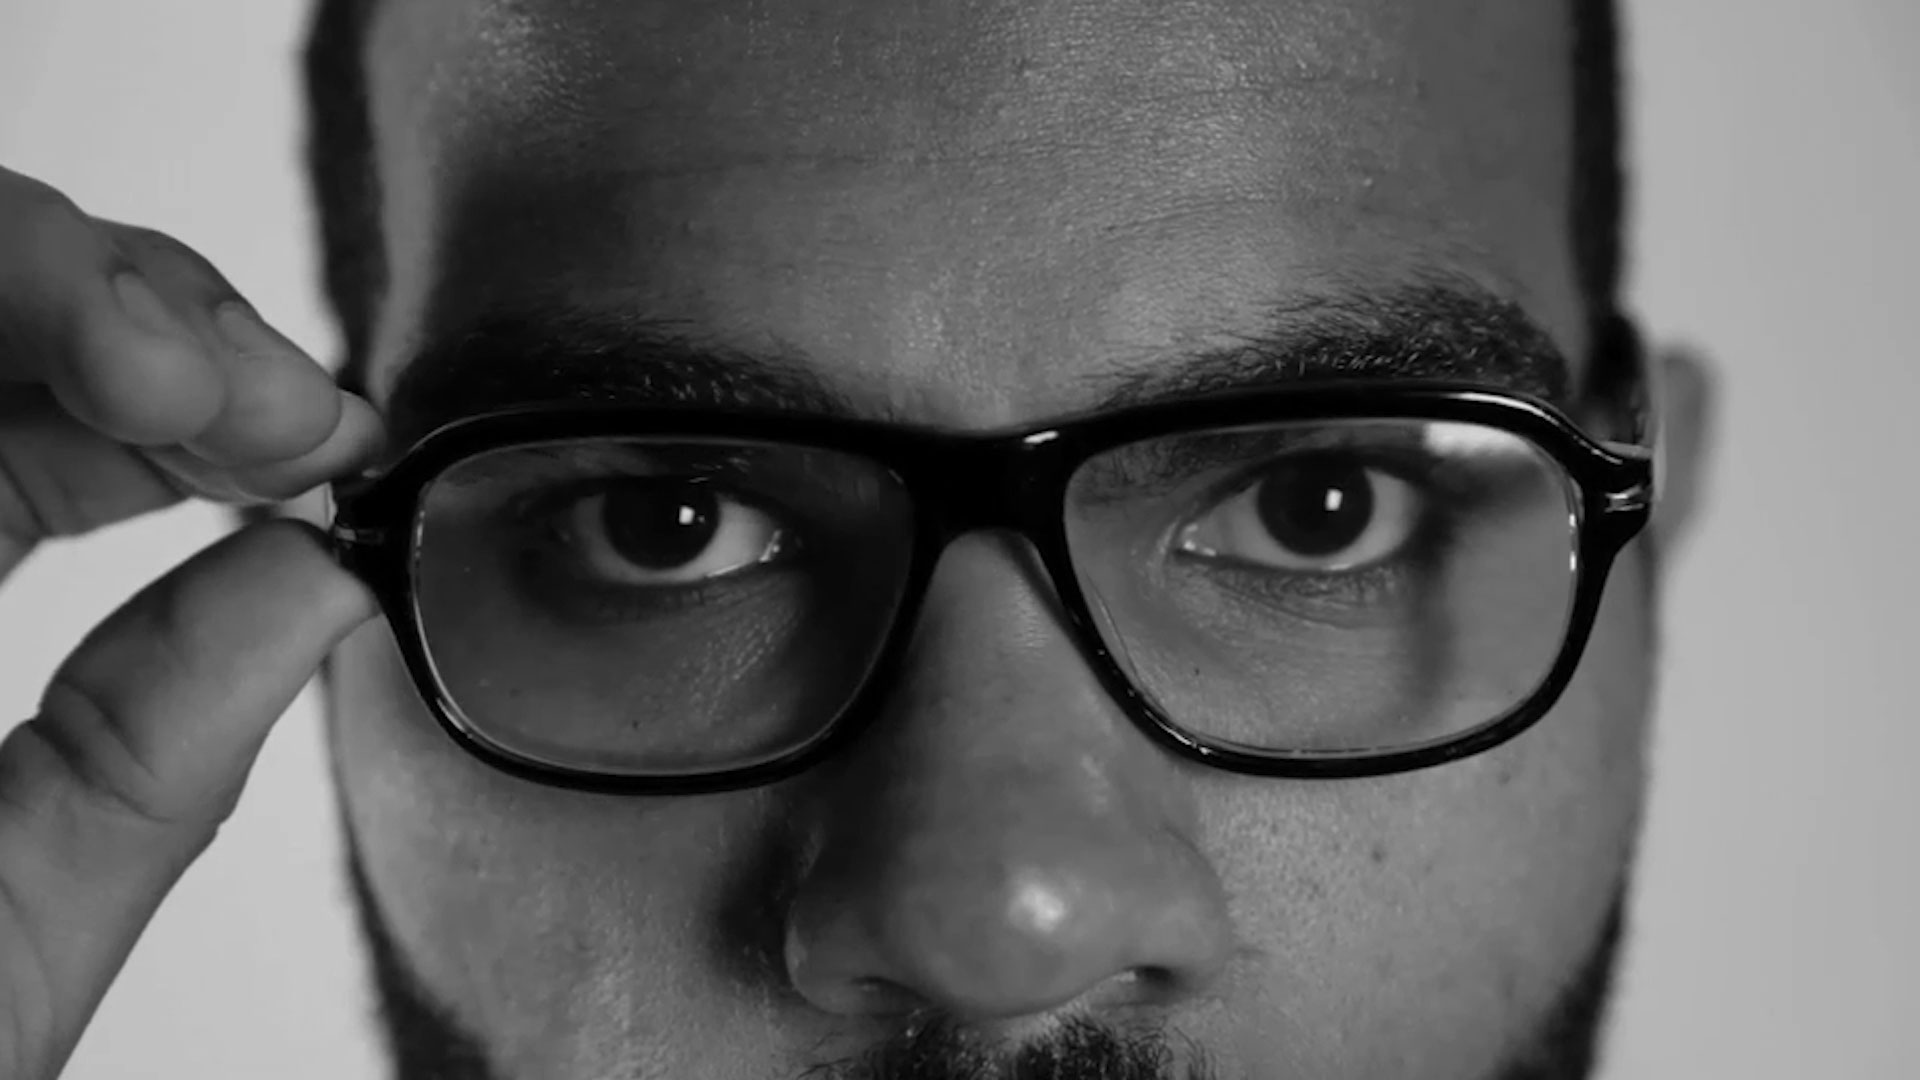 person glasses eyes wearing face man human face indoor looking portrait close black and white staring